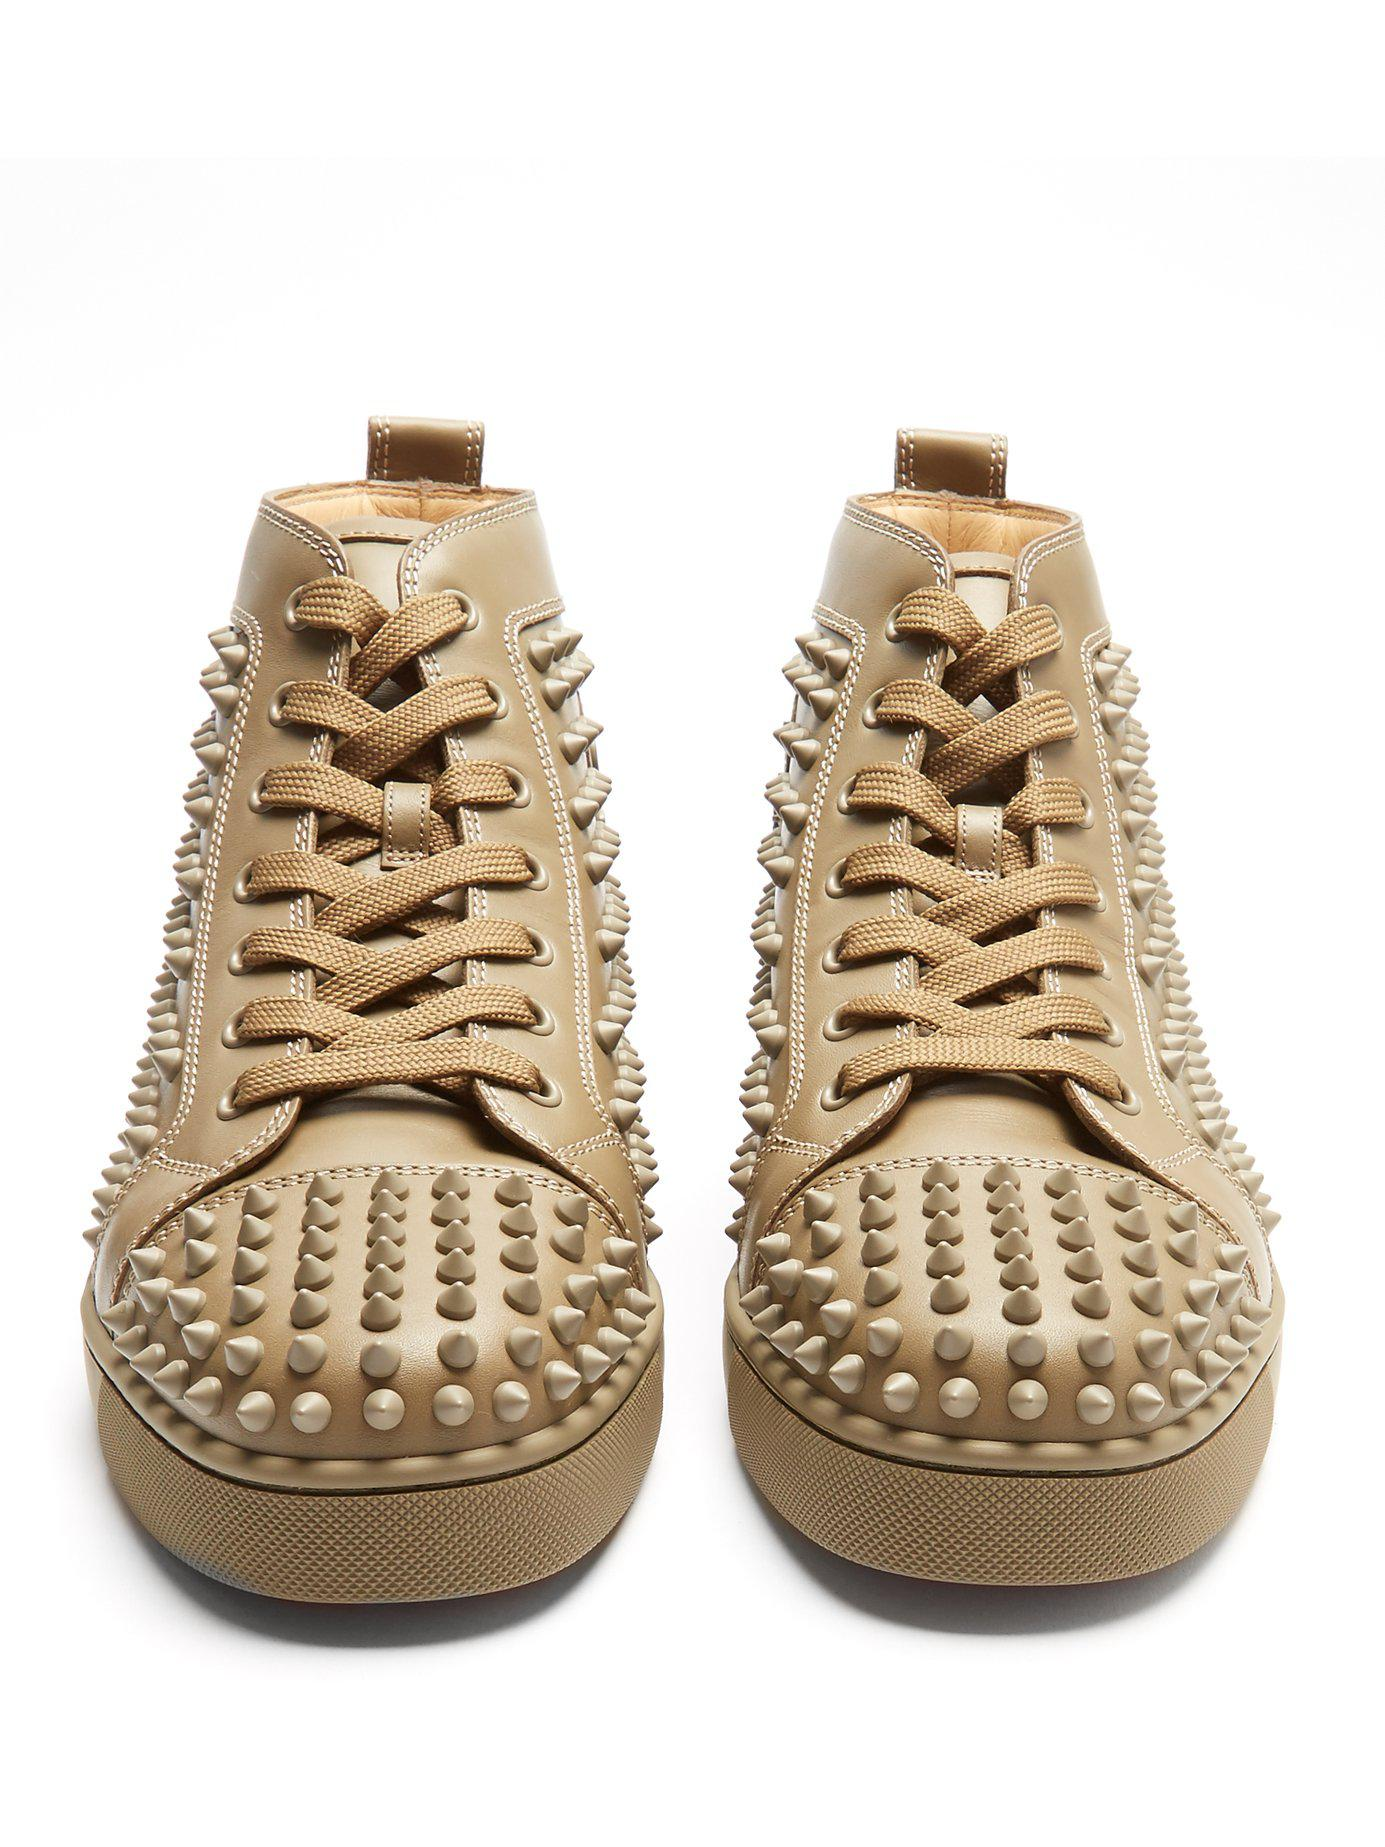 99fdaf3e9299 Lyst - Christian Louboutin Louis Spike Embellished High Top Trainers ...